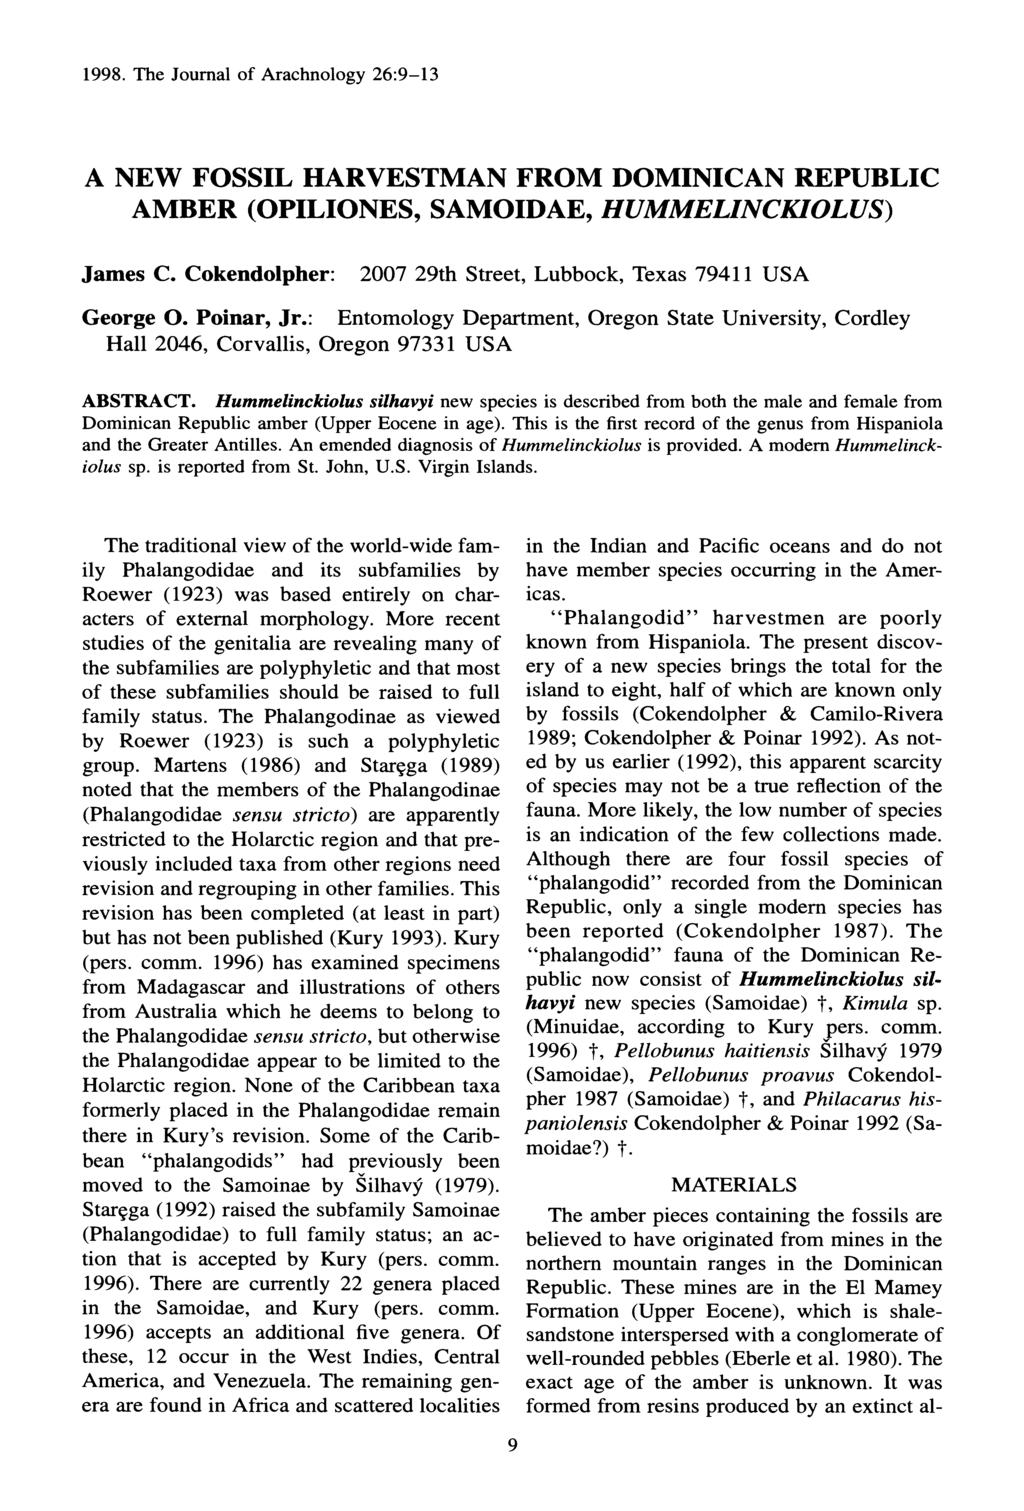 1998. The Journal of Arachnology 26:9-13 A NEW FOSSIL HARVESTMAN FROM DOMINICAN REPUBLIC AMBER (OPILIONES, SAMOIDAE, HUMMELINCKIOLUS) James C.